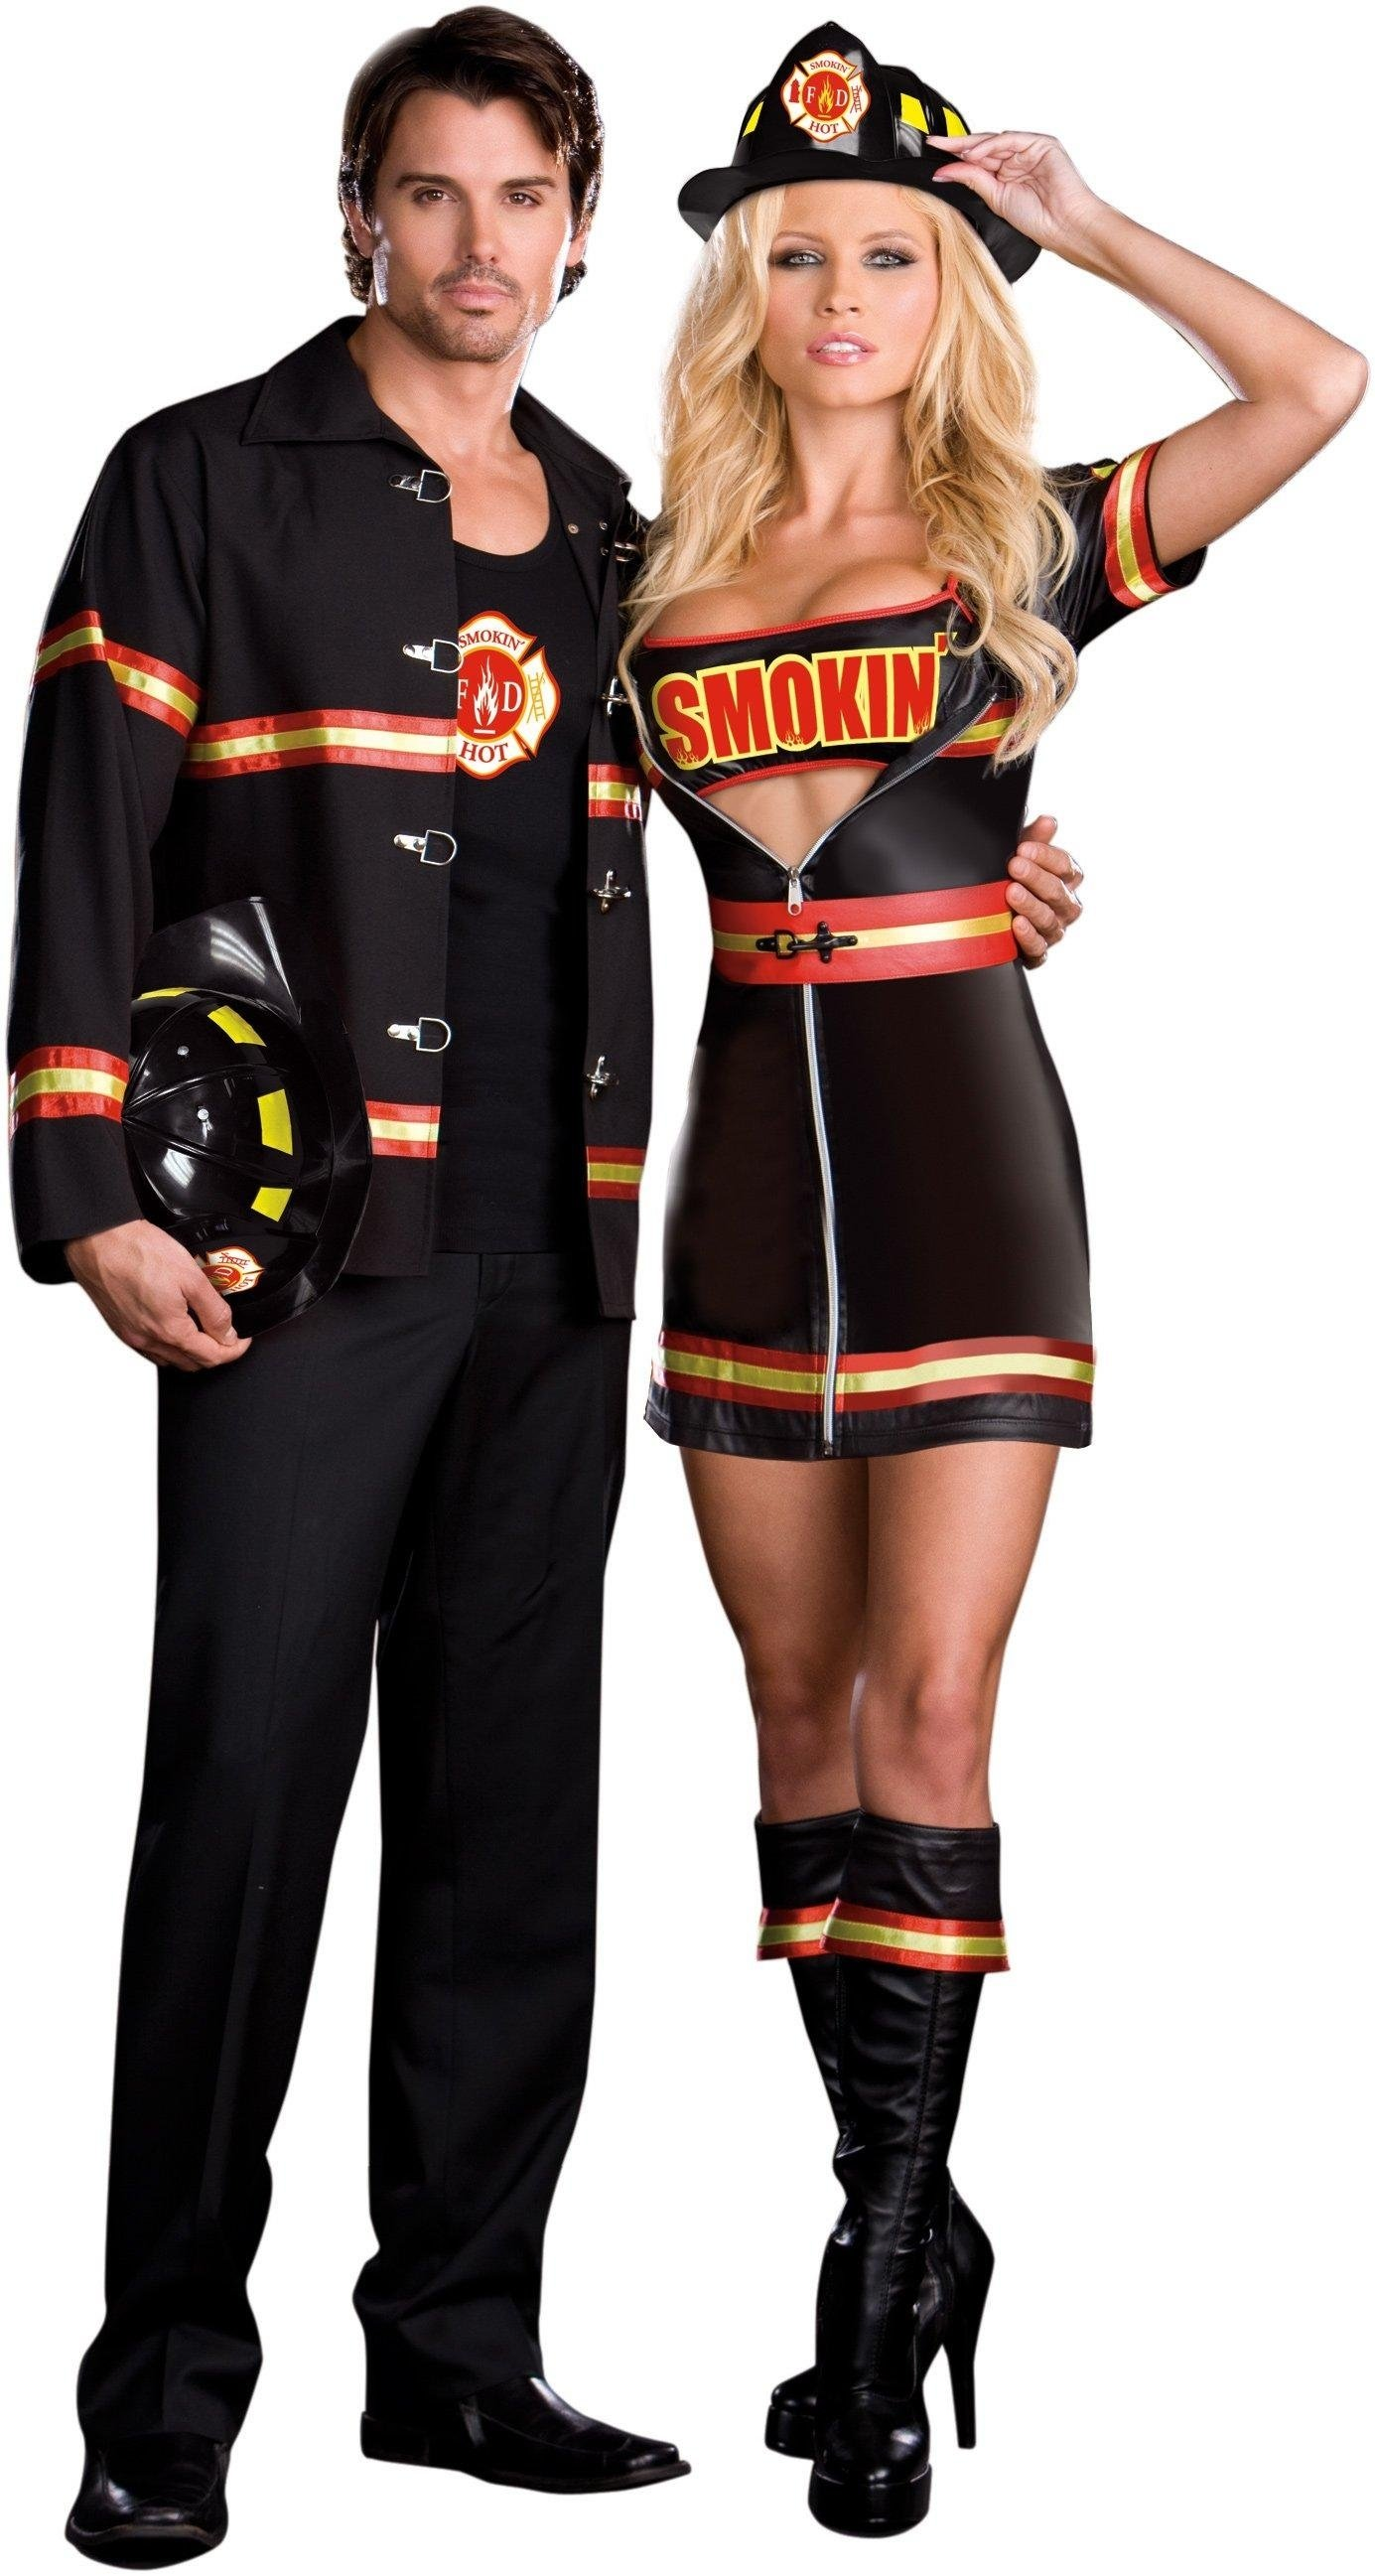 10 Great Sexy Couples Halloween Costume Ideas 35 couples halloween costumes ideas inspirationseek 2 2020